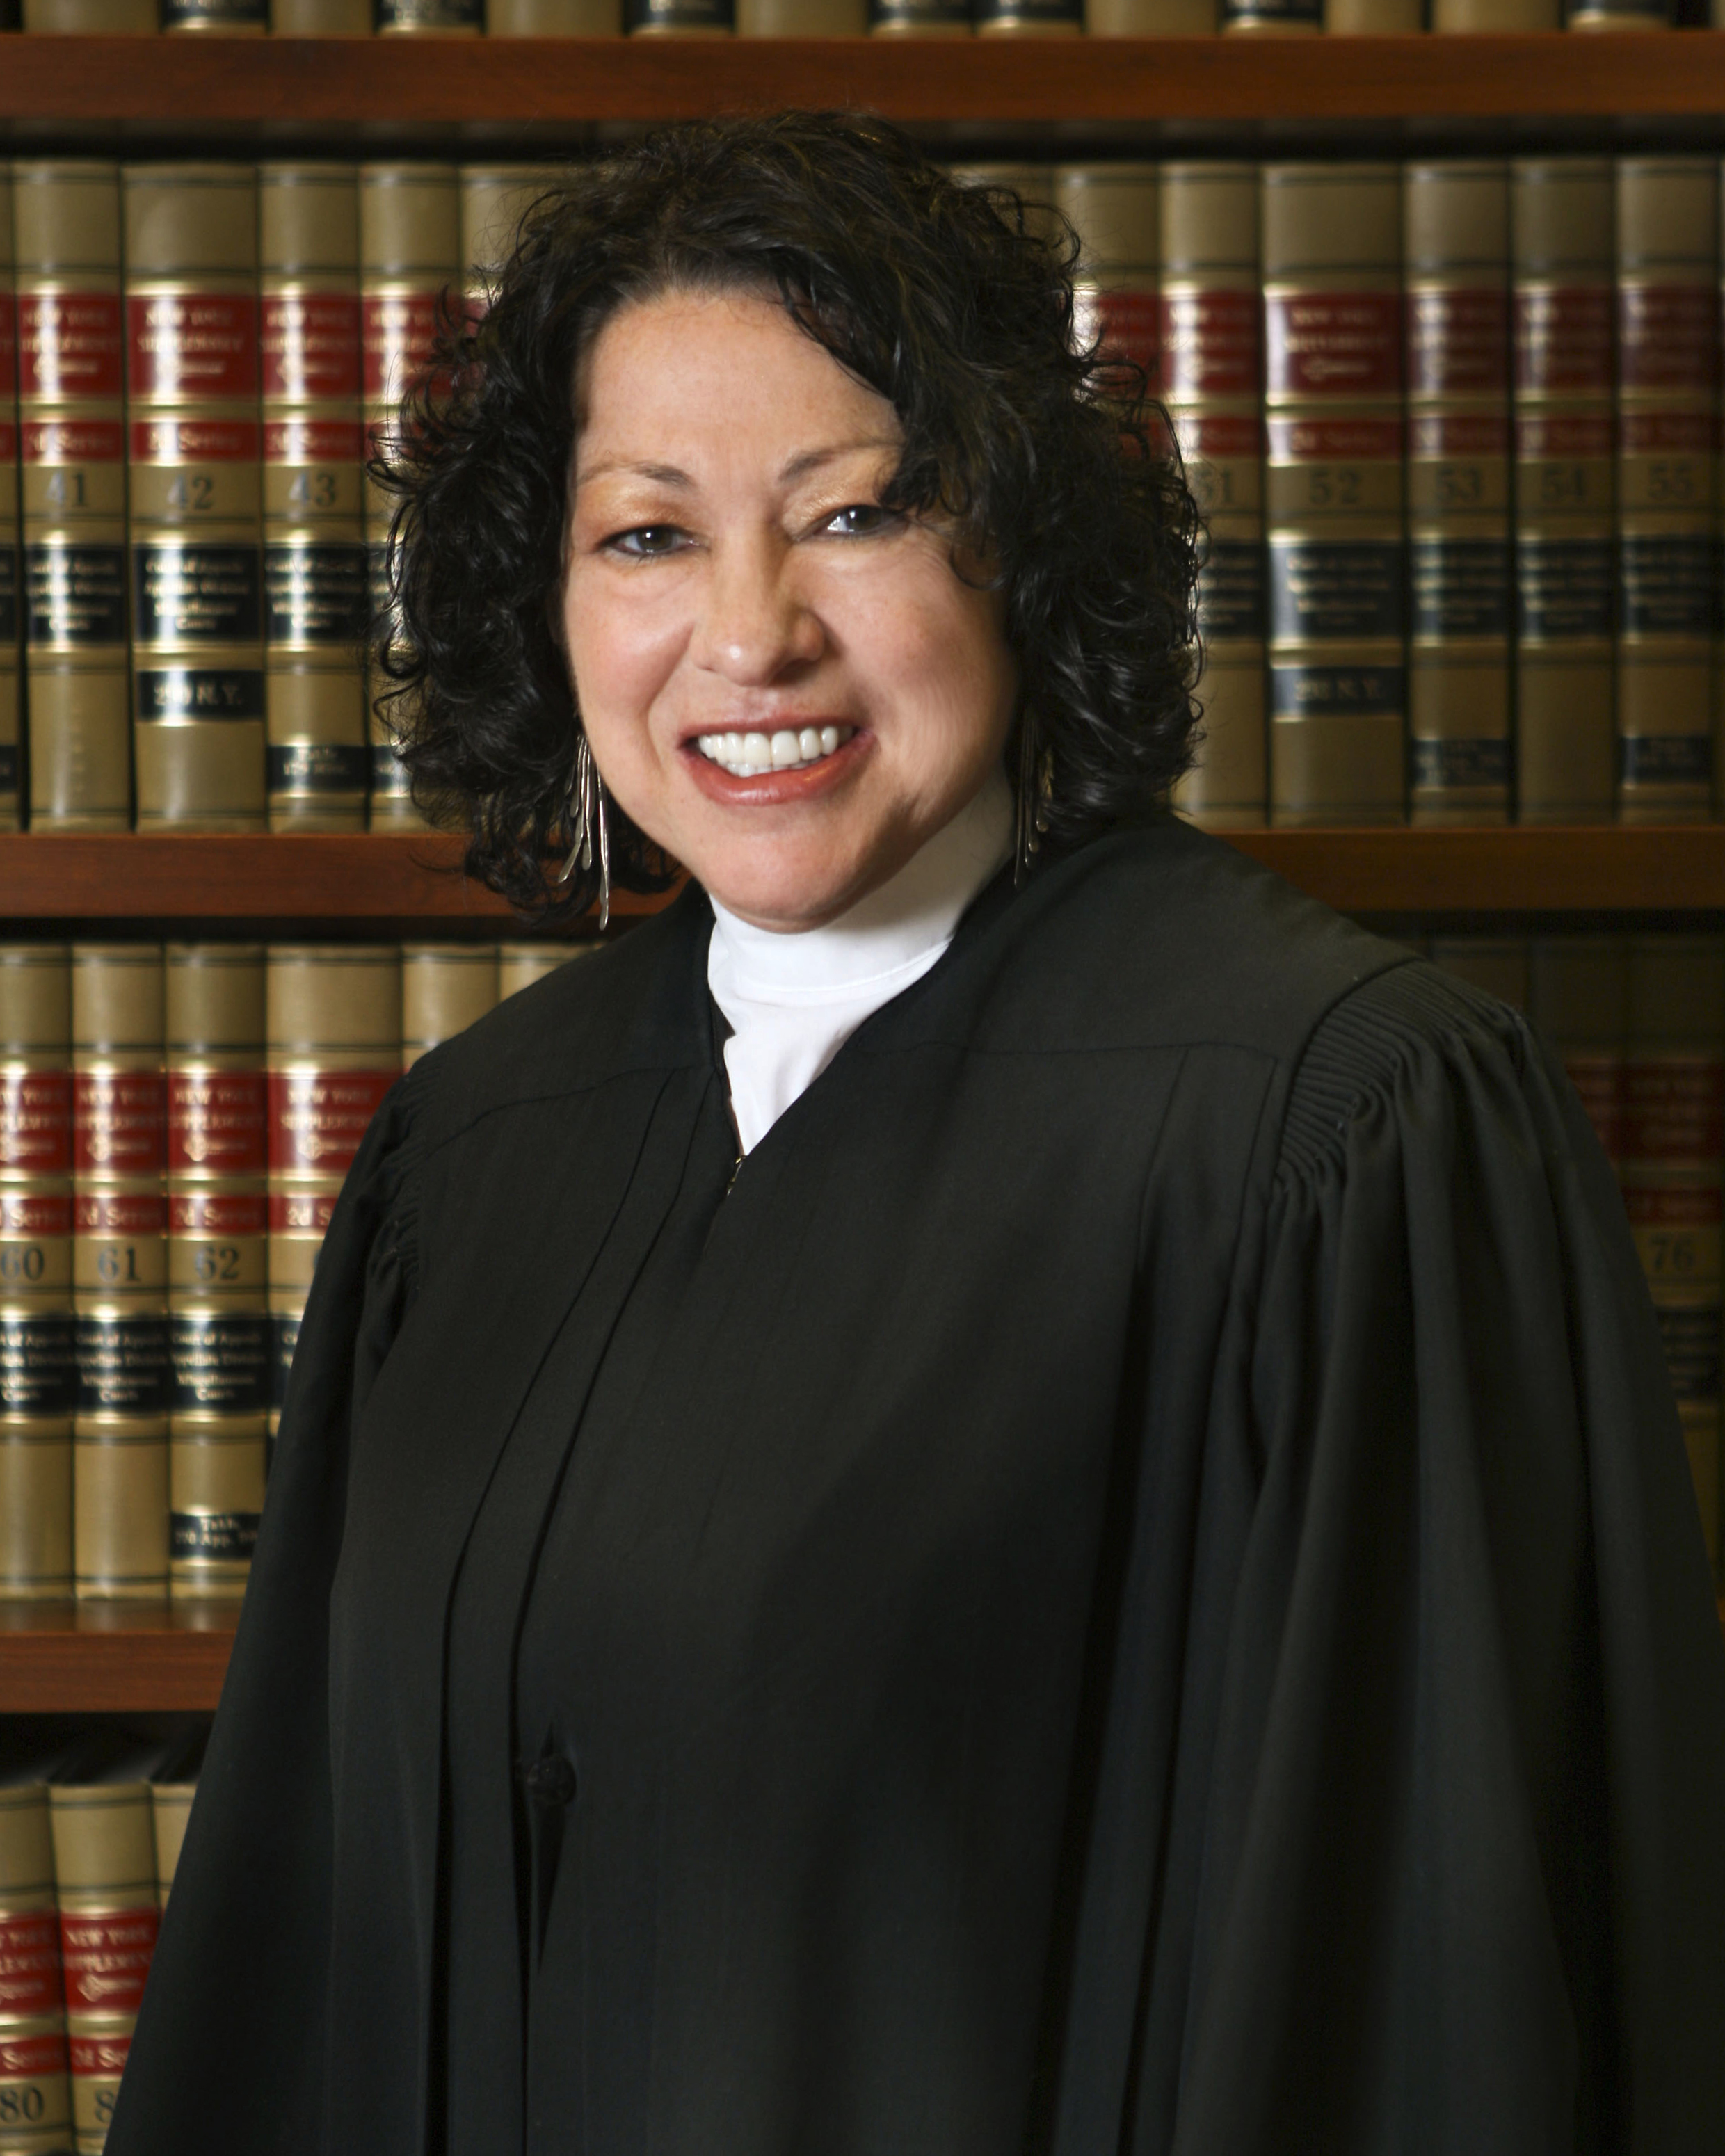 Sonia Sotomayor likes books and is a hero